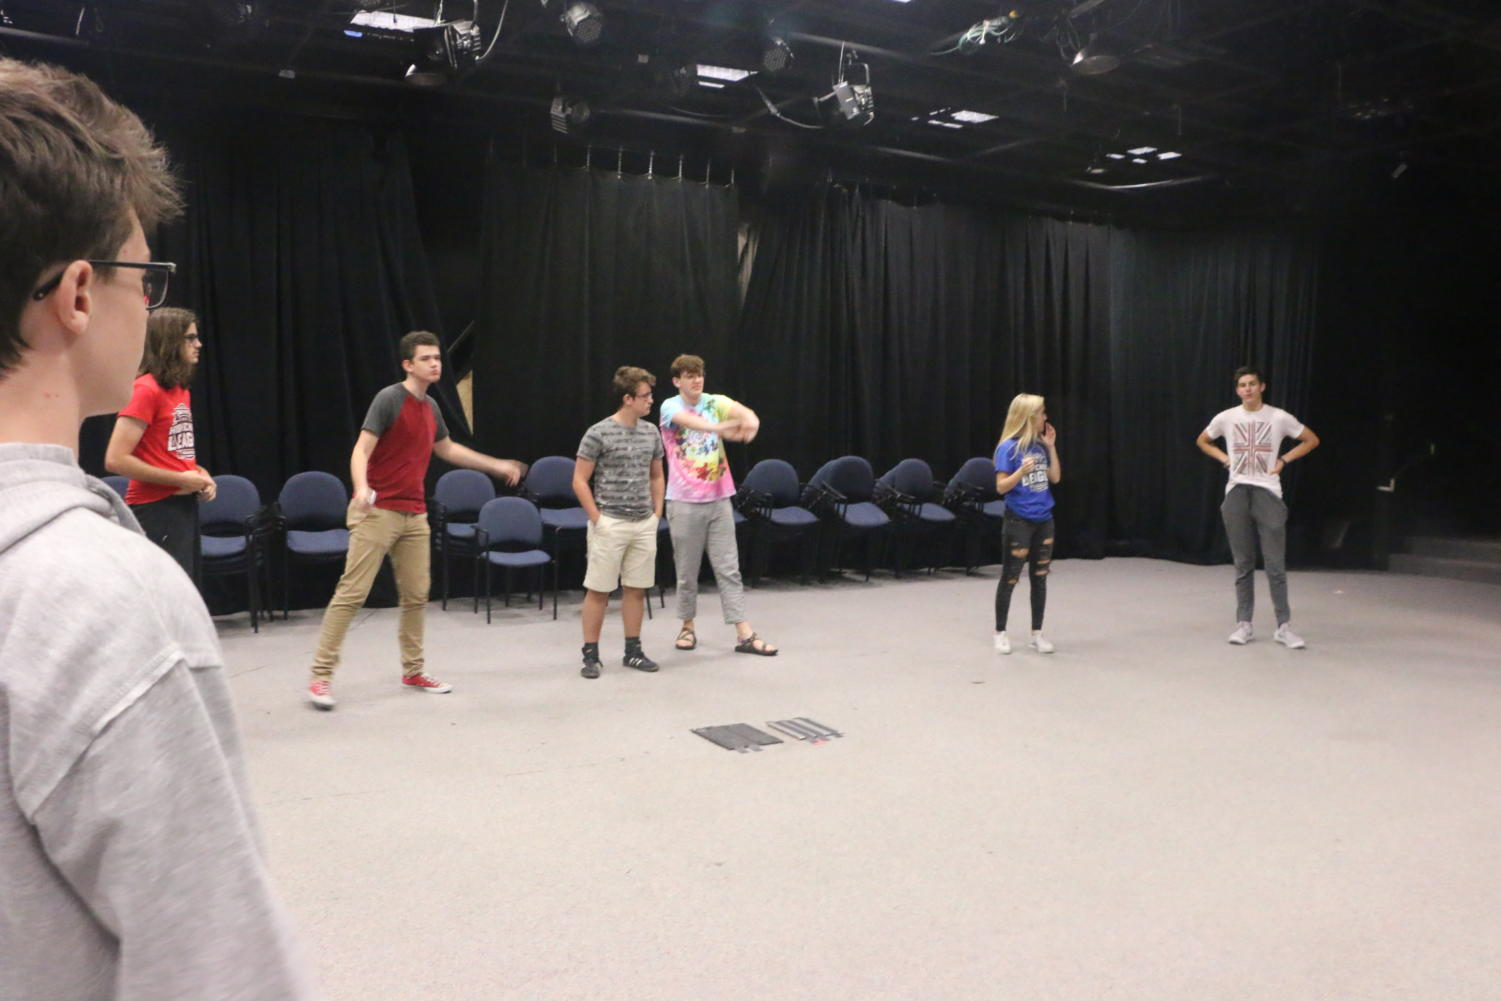 ComedySportz members warm up playing a game called